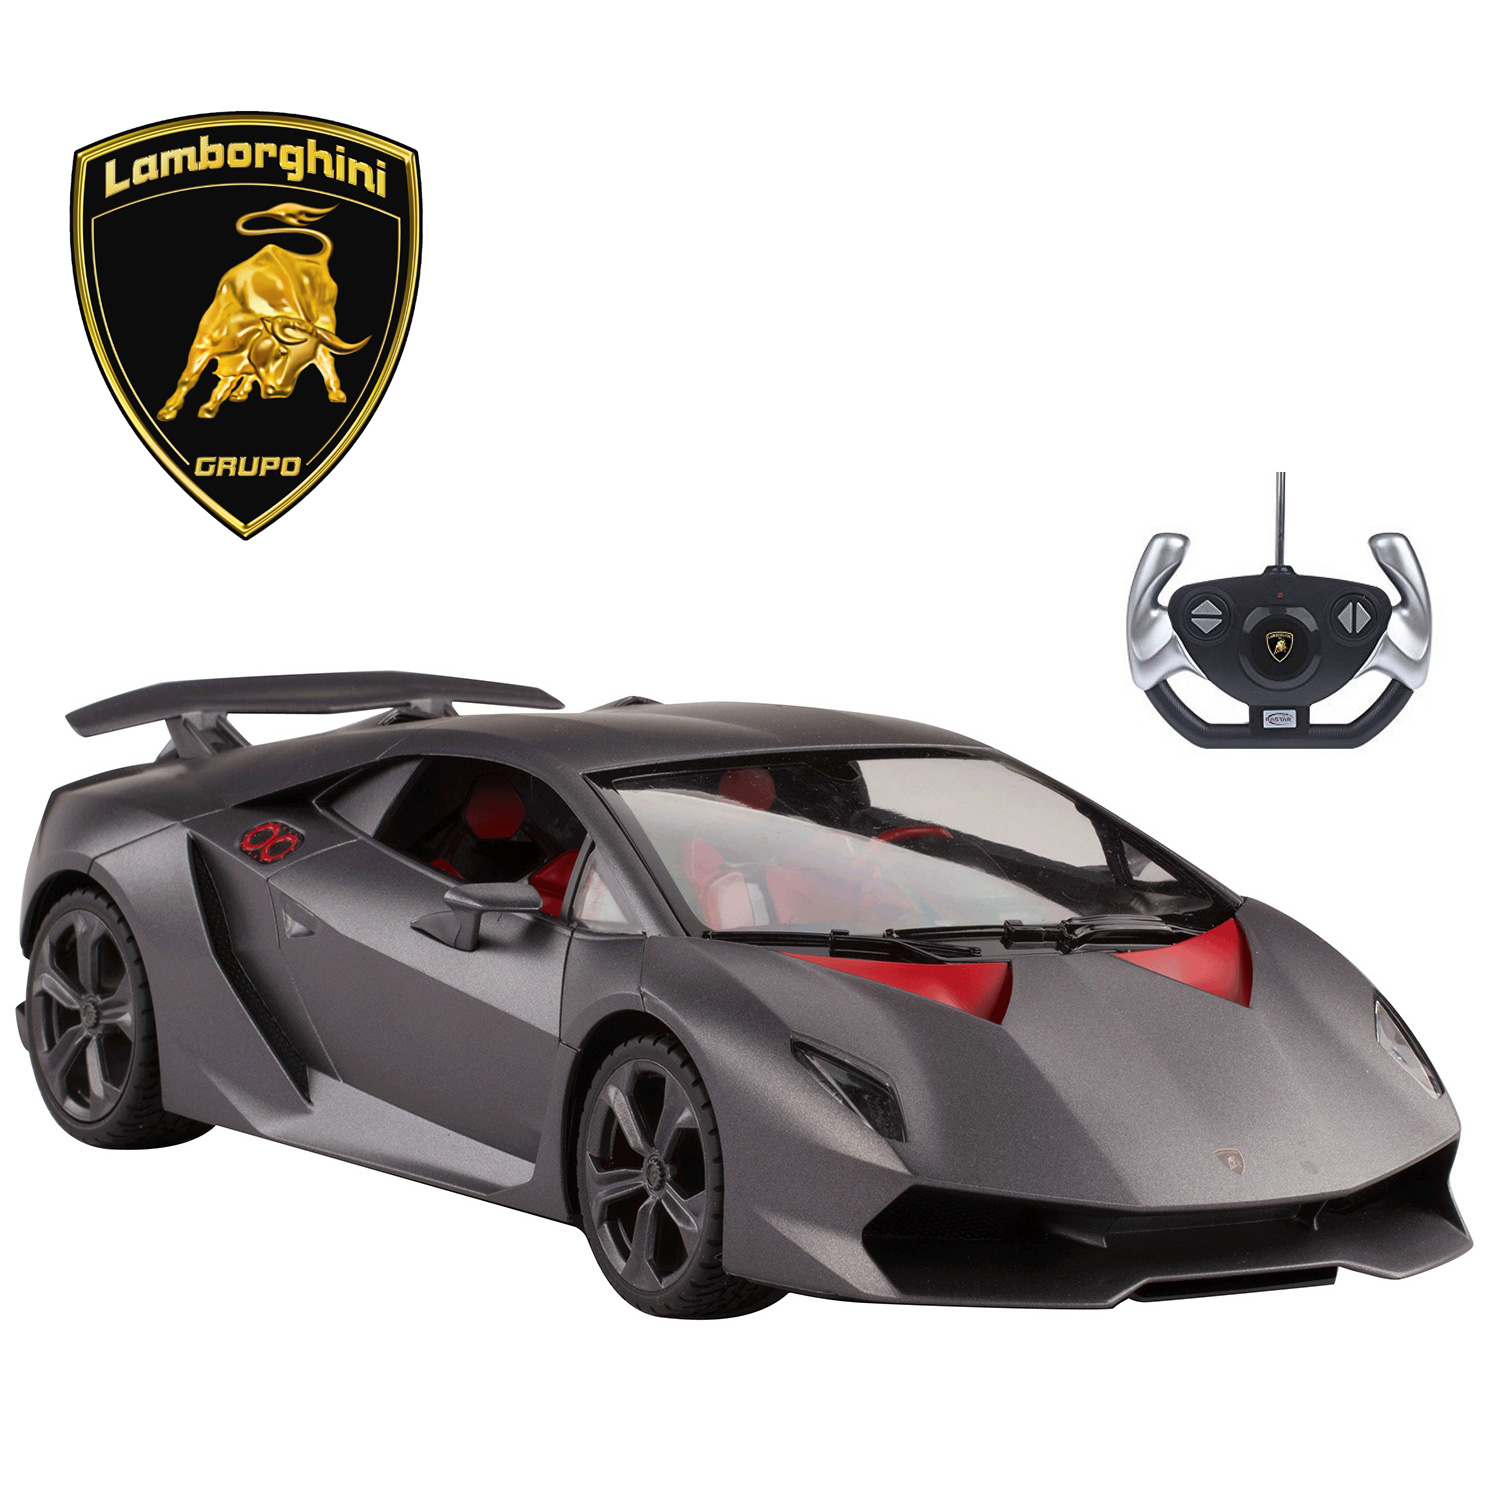 Licensed RC Car 1:14 Scale Lamborghini Sesto Elemento | Rastar Radio Remote Control 1/14 RTR Super Sports Car Model